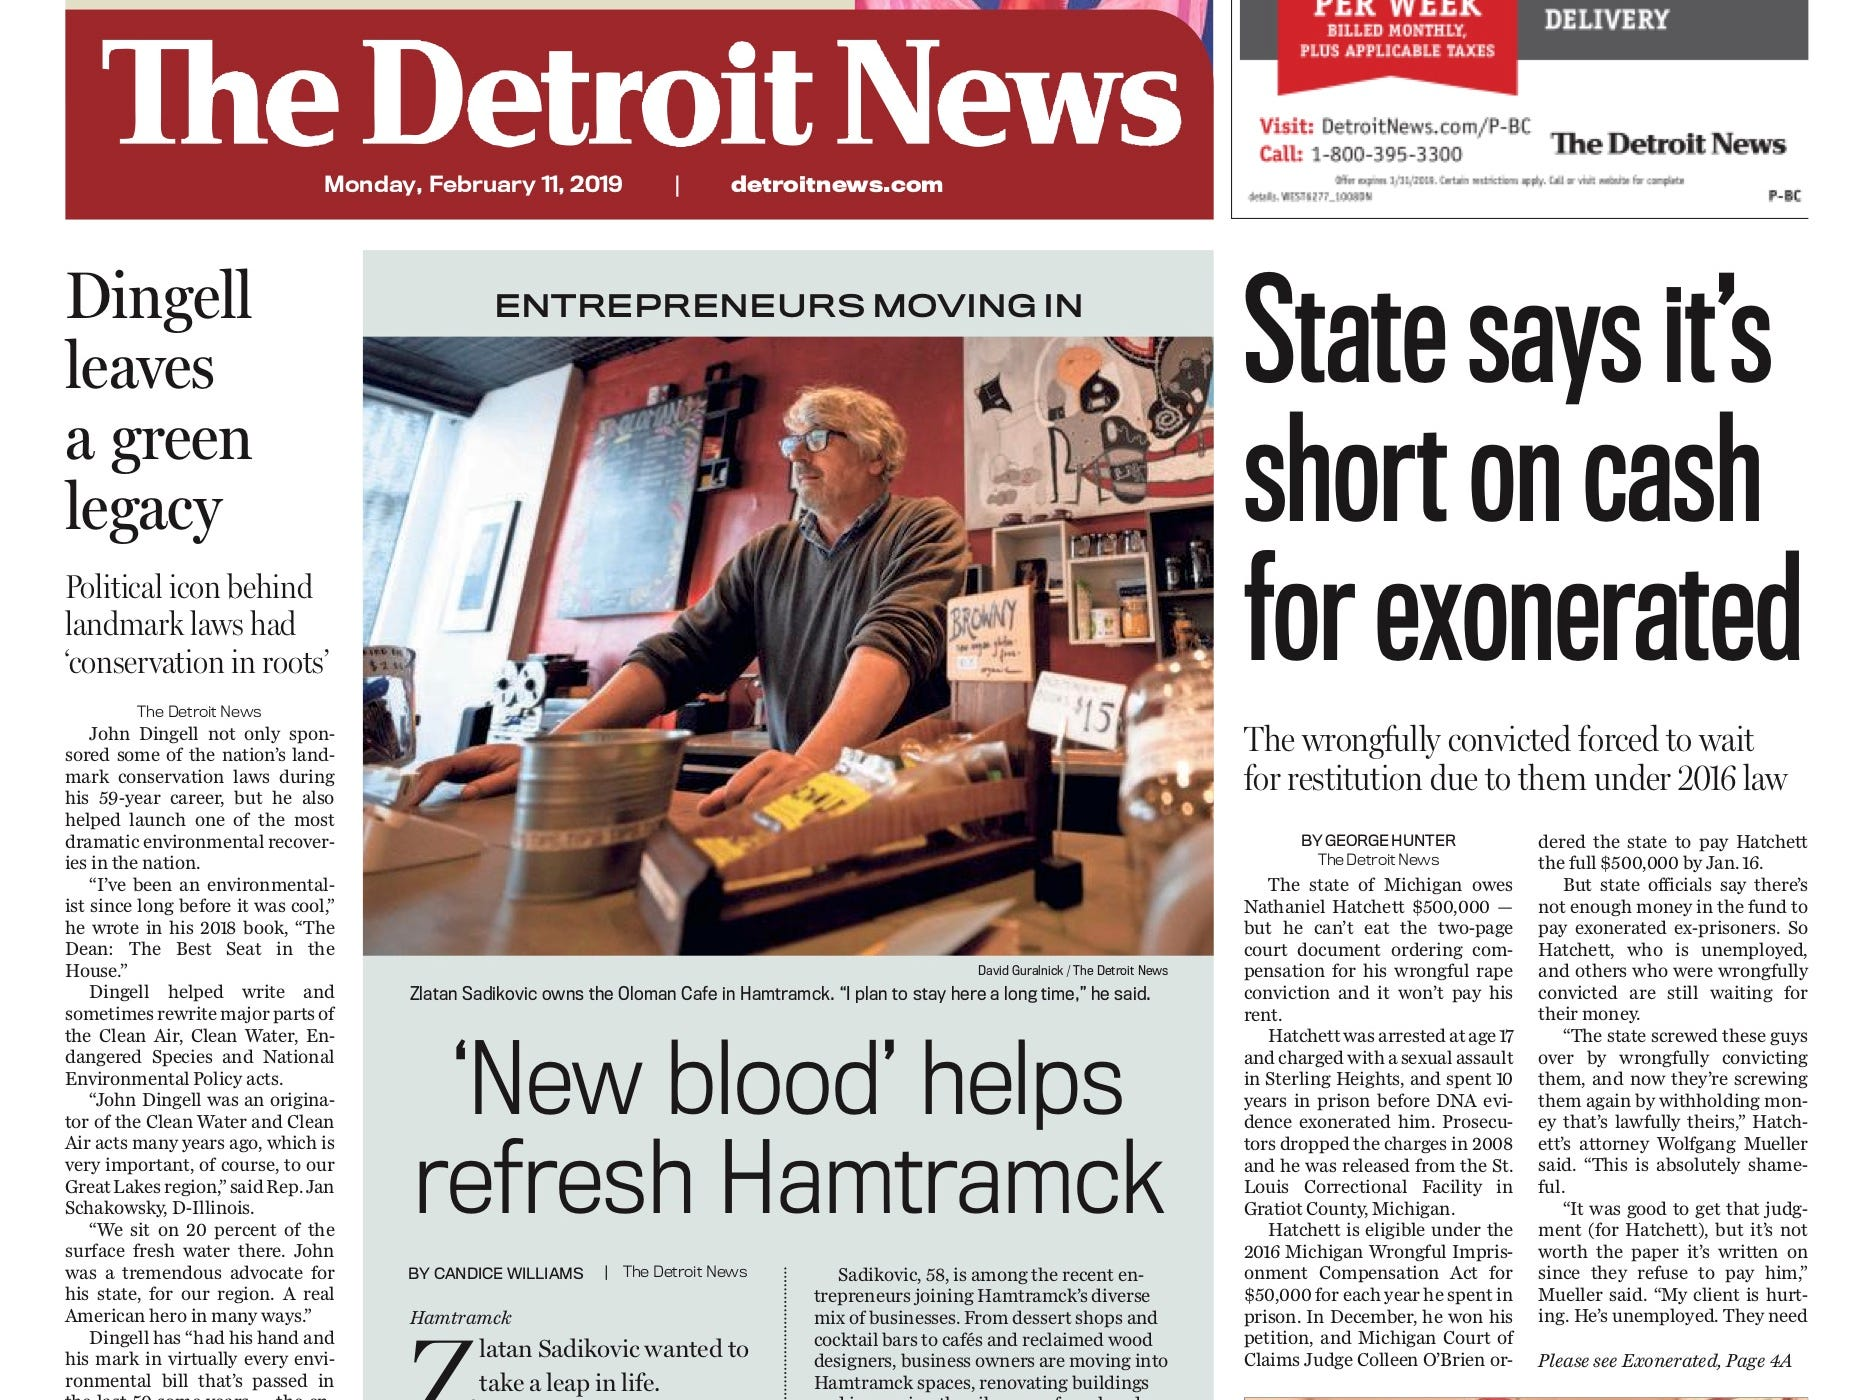 The front page of the Detroit News on February 11, 2019.